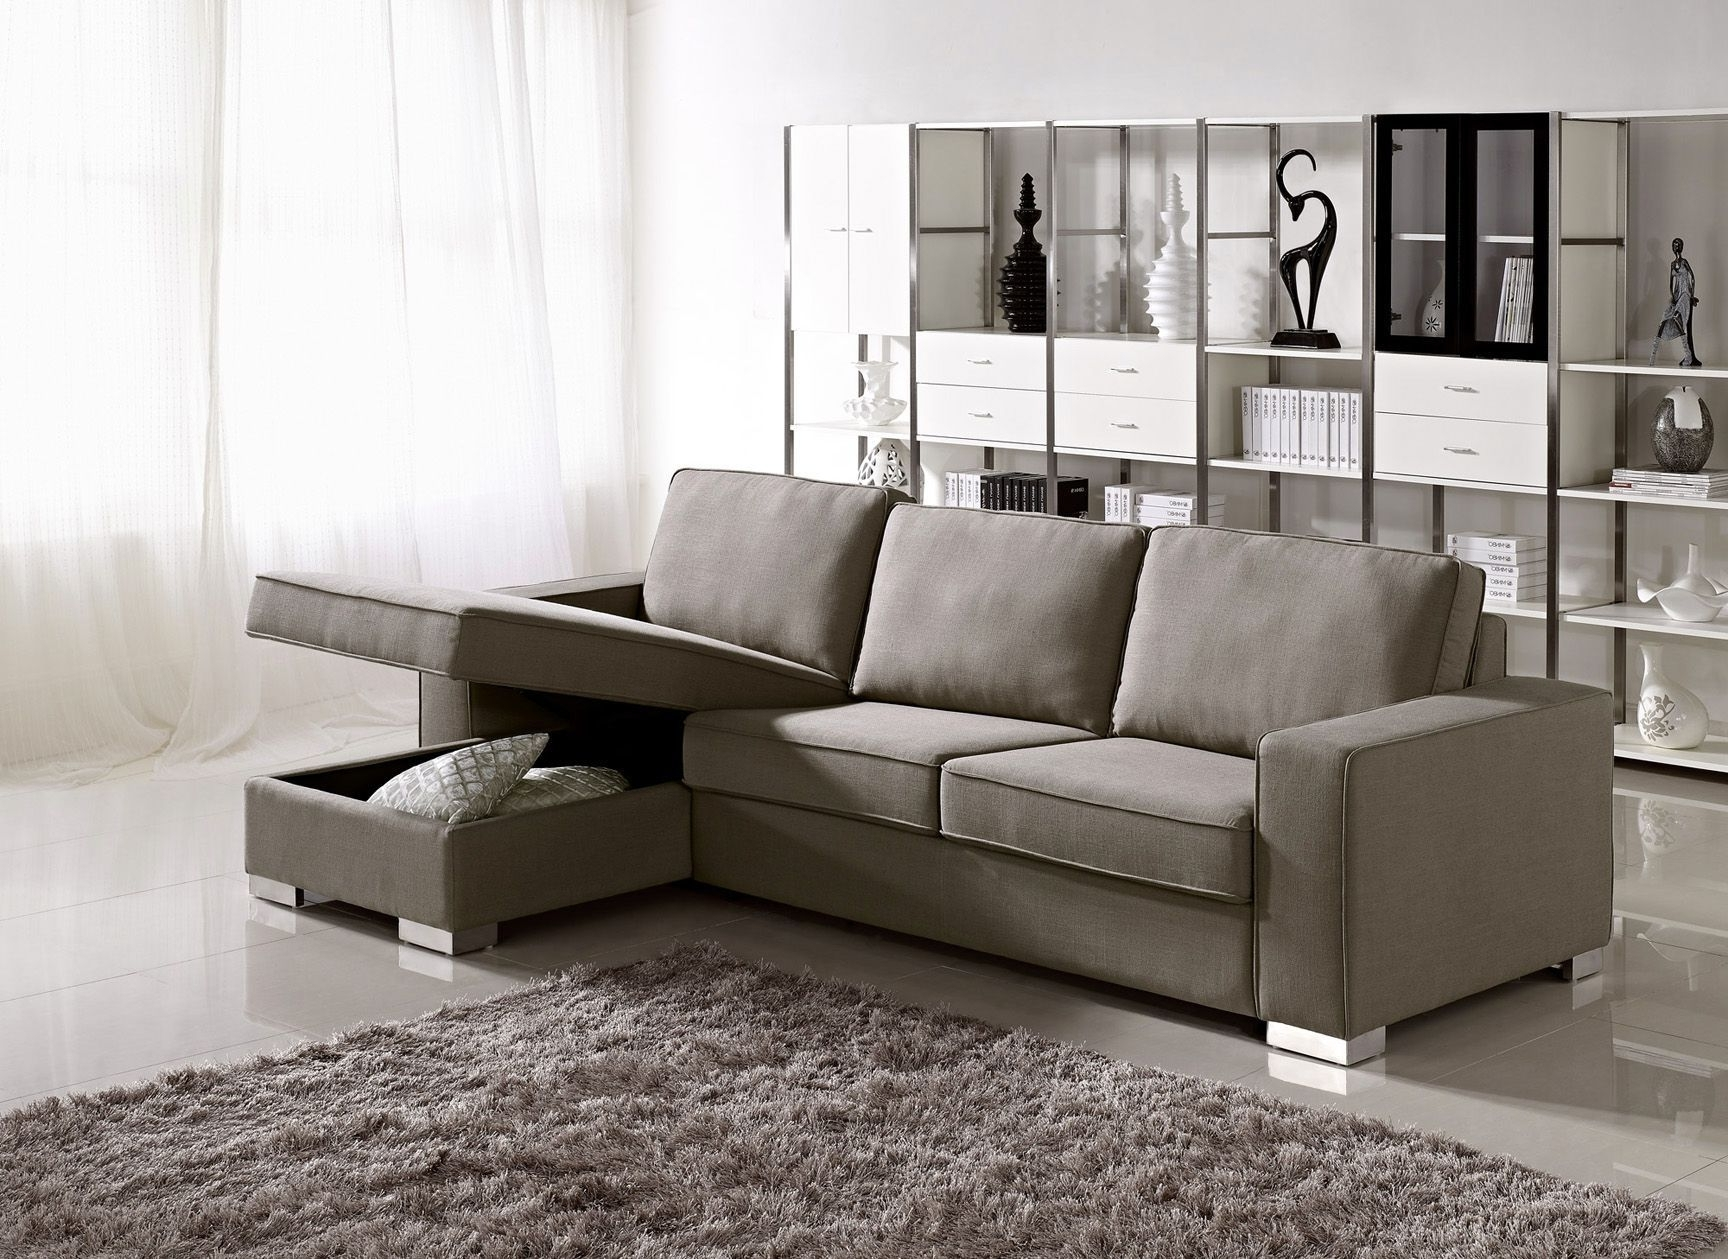 Fashionable Apartment Sectional Sofa With Chaise – Hotelsbacau Throughout Portland Oregon Sectional Sofas (View 7 of 20)